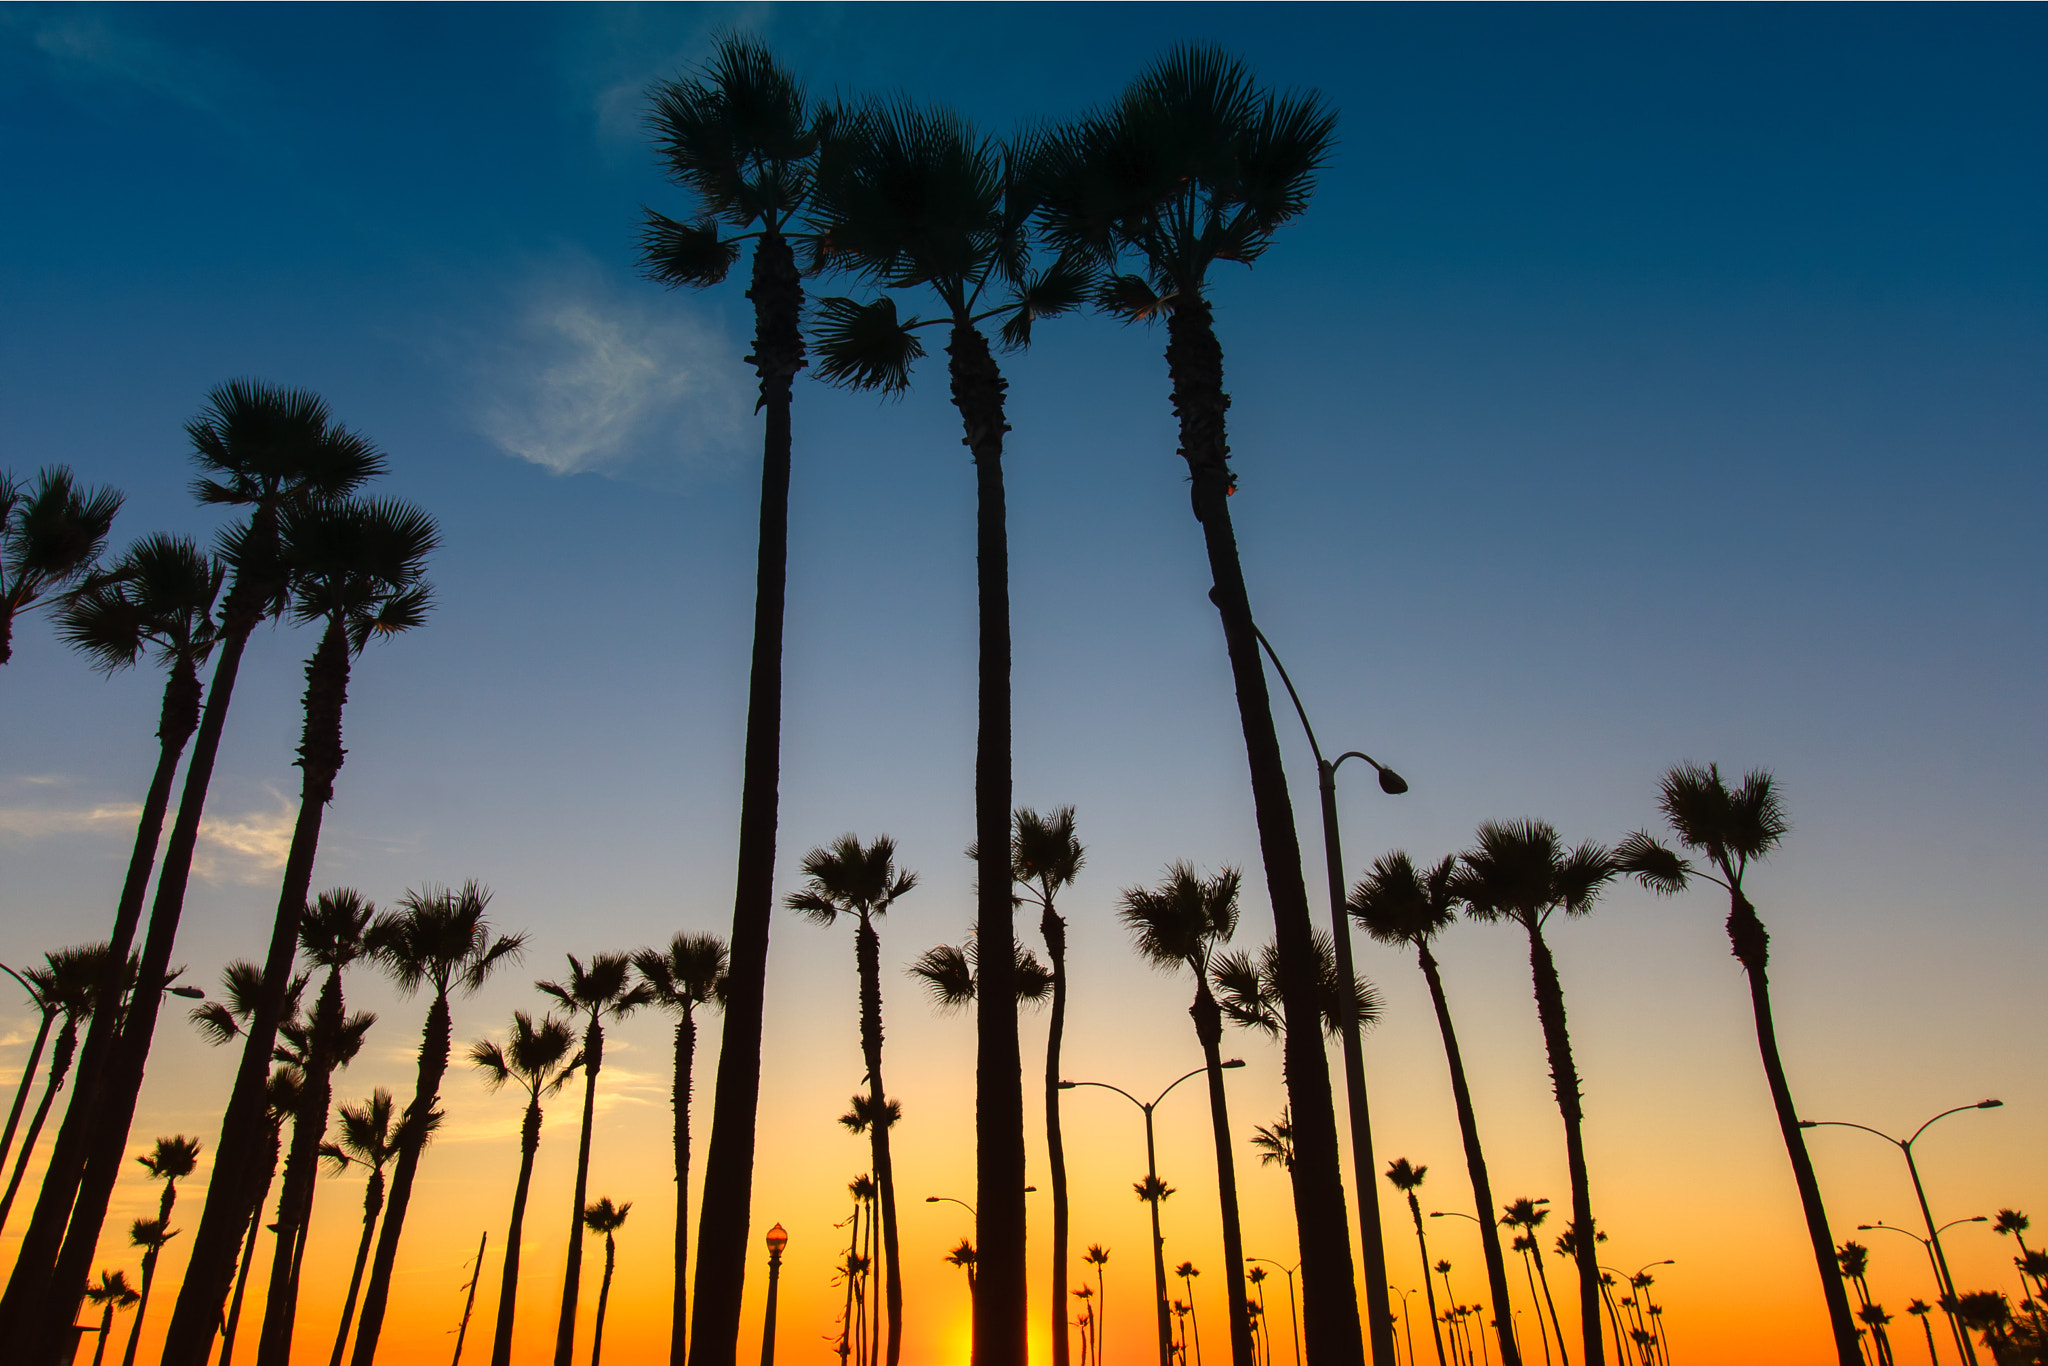 Photograph Reach For The Sky by Corey Thompson on 500px